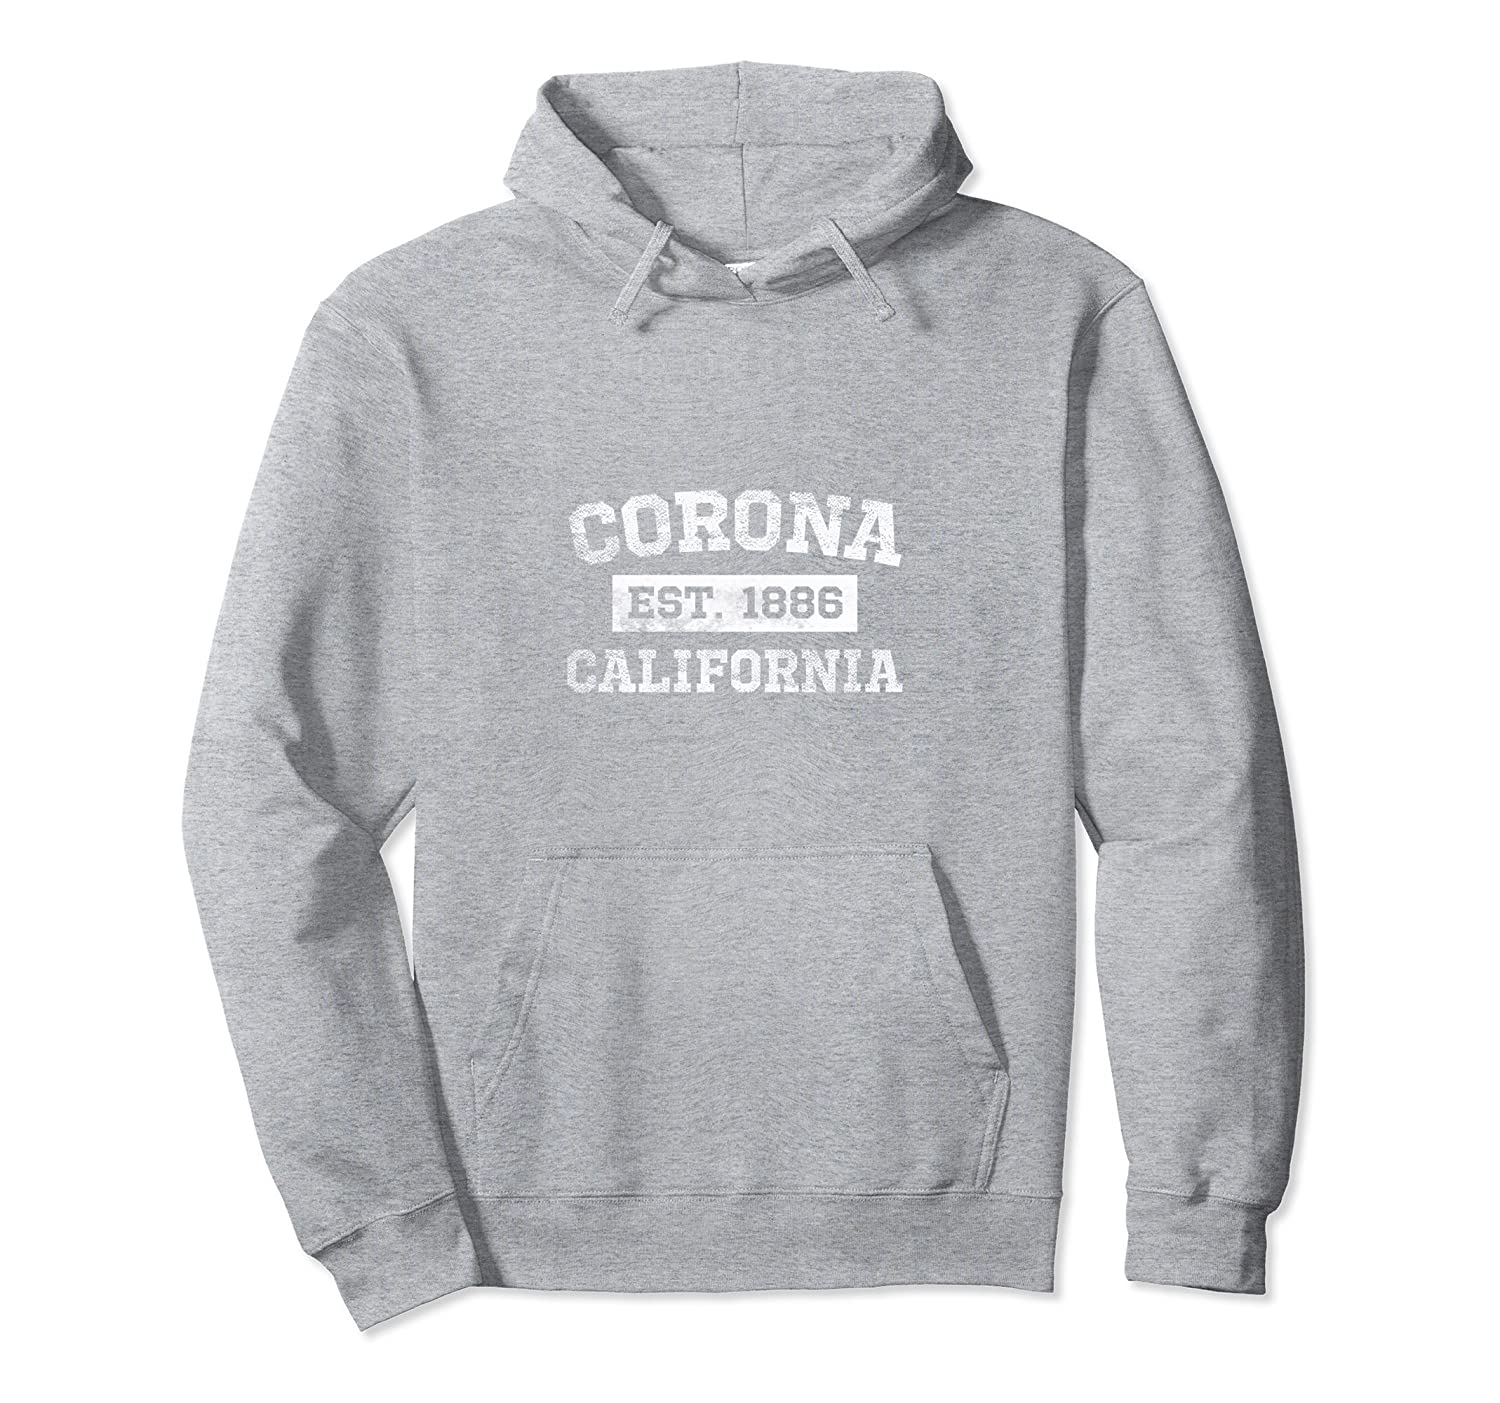 Corona California Est. 1886 Hoodie Sweatshirt Distressed-TH